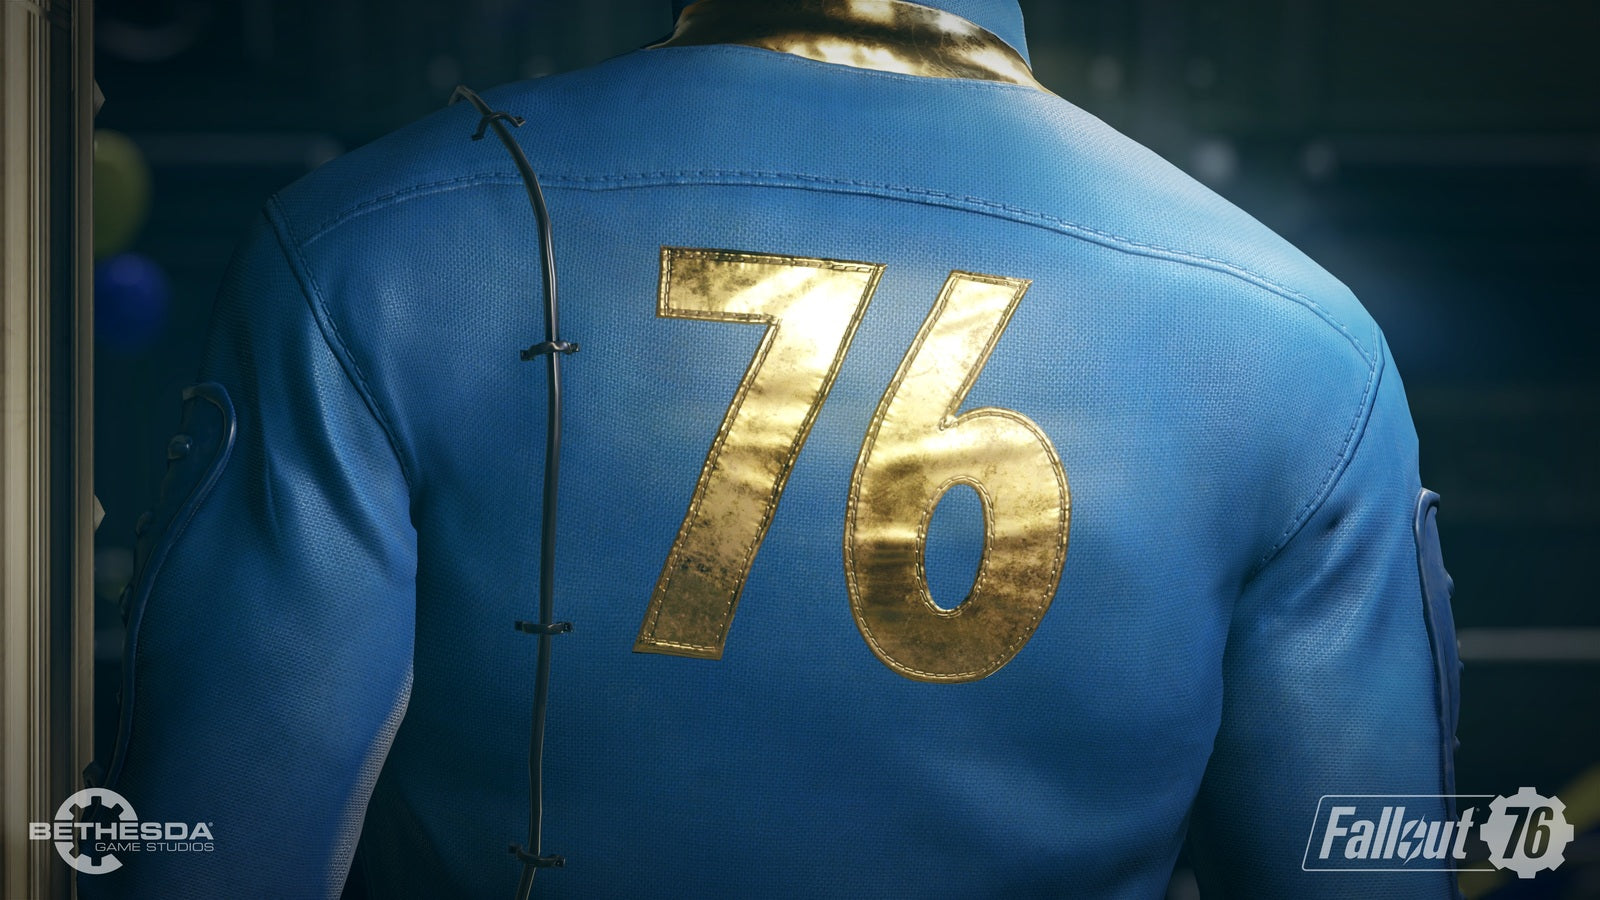 Fallout 76 Wastelanders - Xbox One